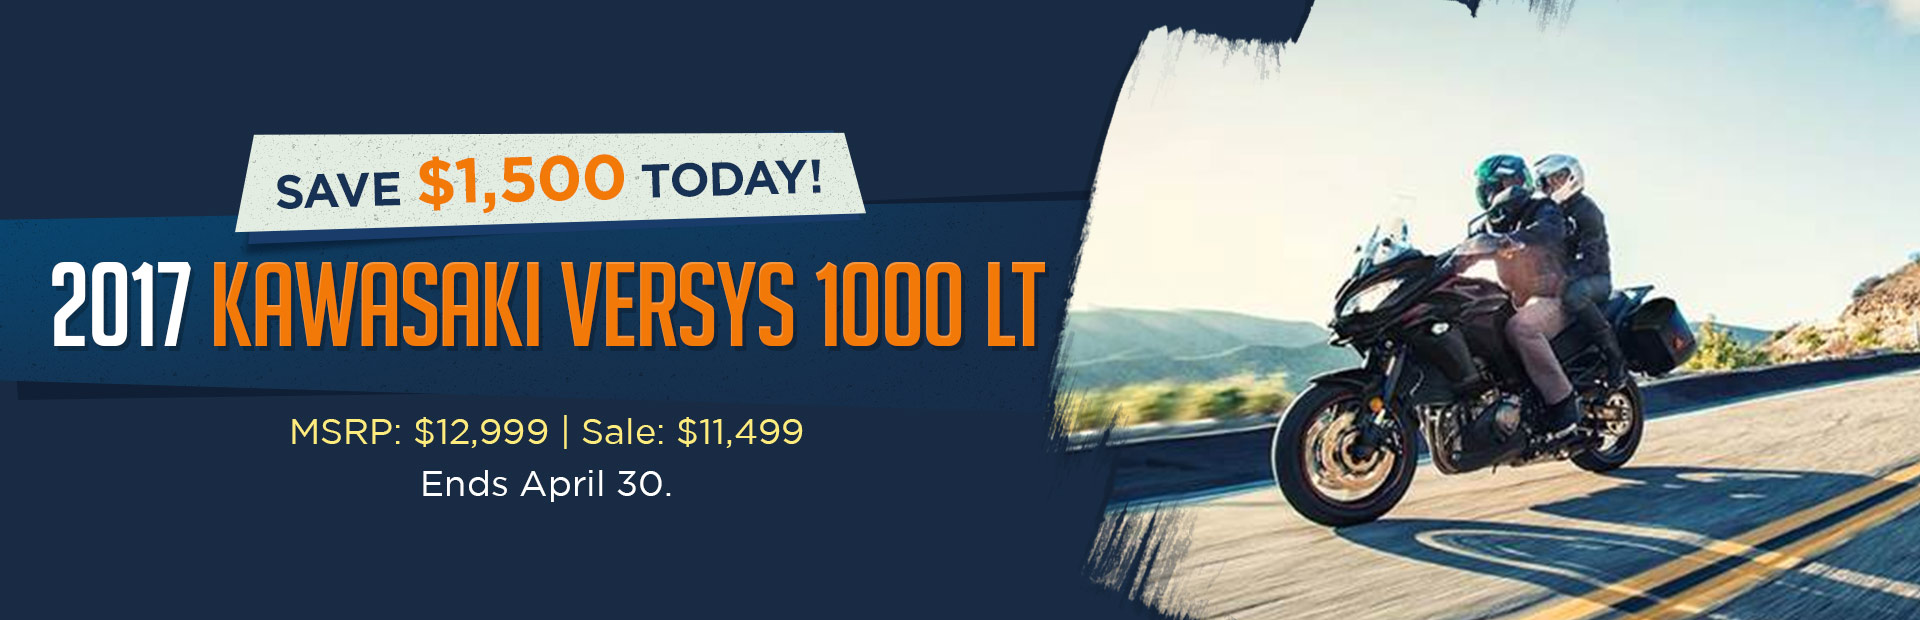 Save $1,500 on the 2017 Kawasaki Versys 1000 LT!